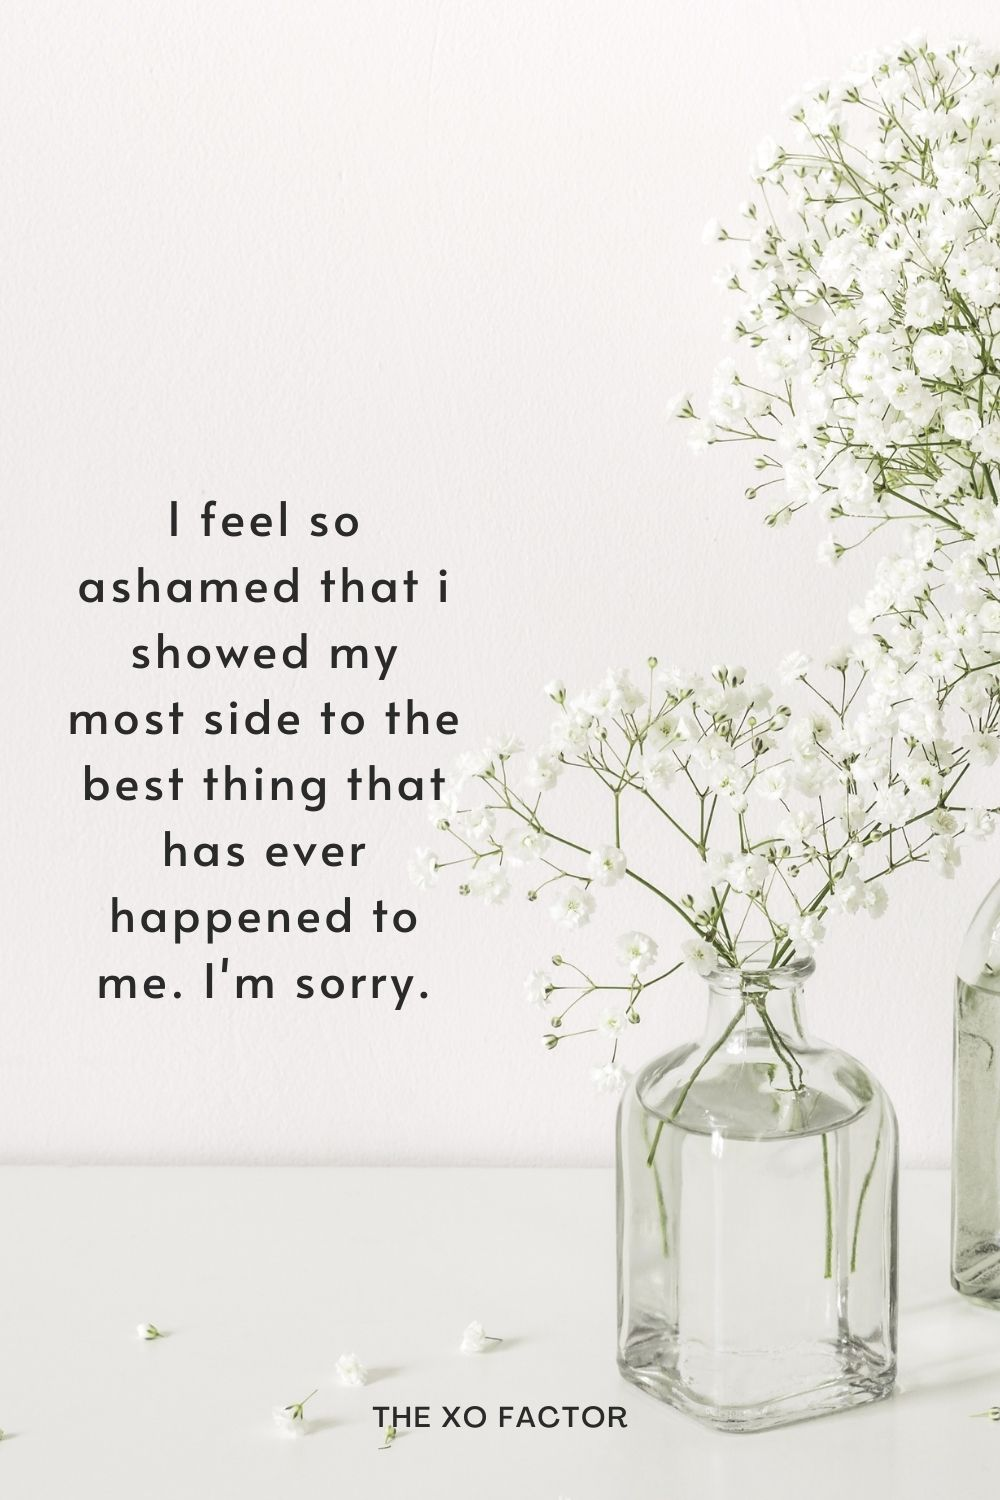 I feel so ashamed that i showed my most side to the best thing that has ever happened to me. I'm sorry.